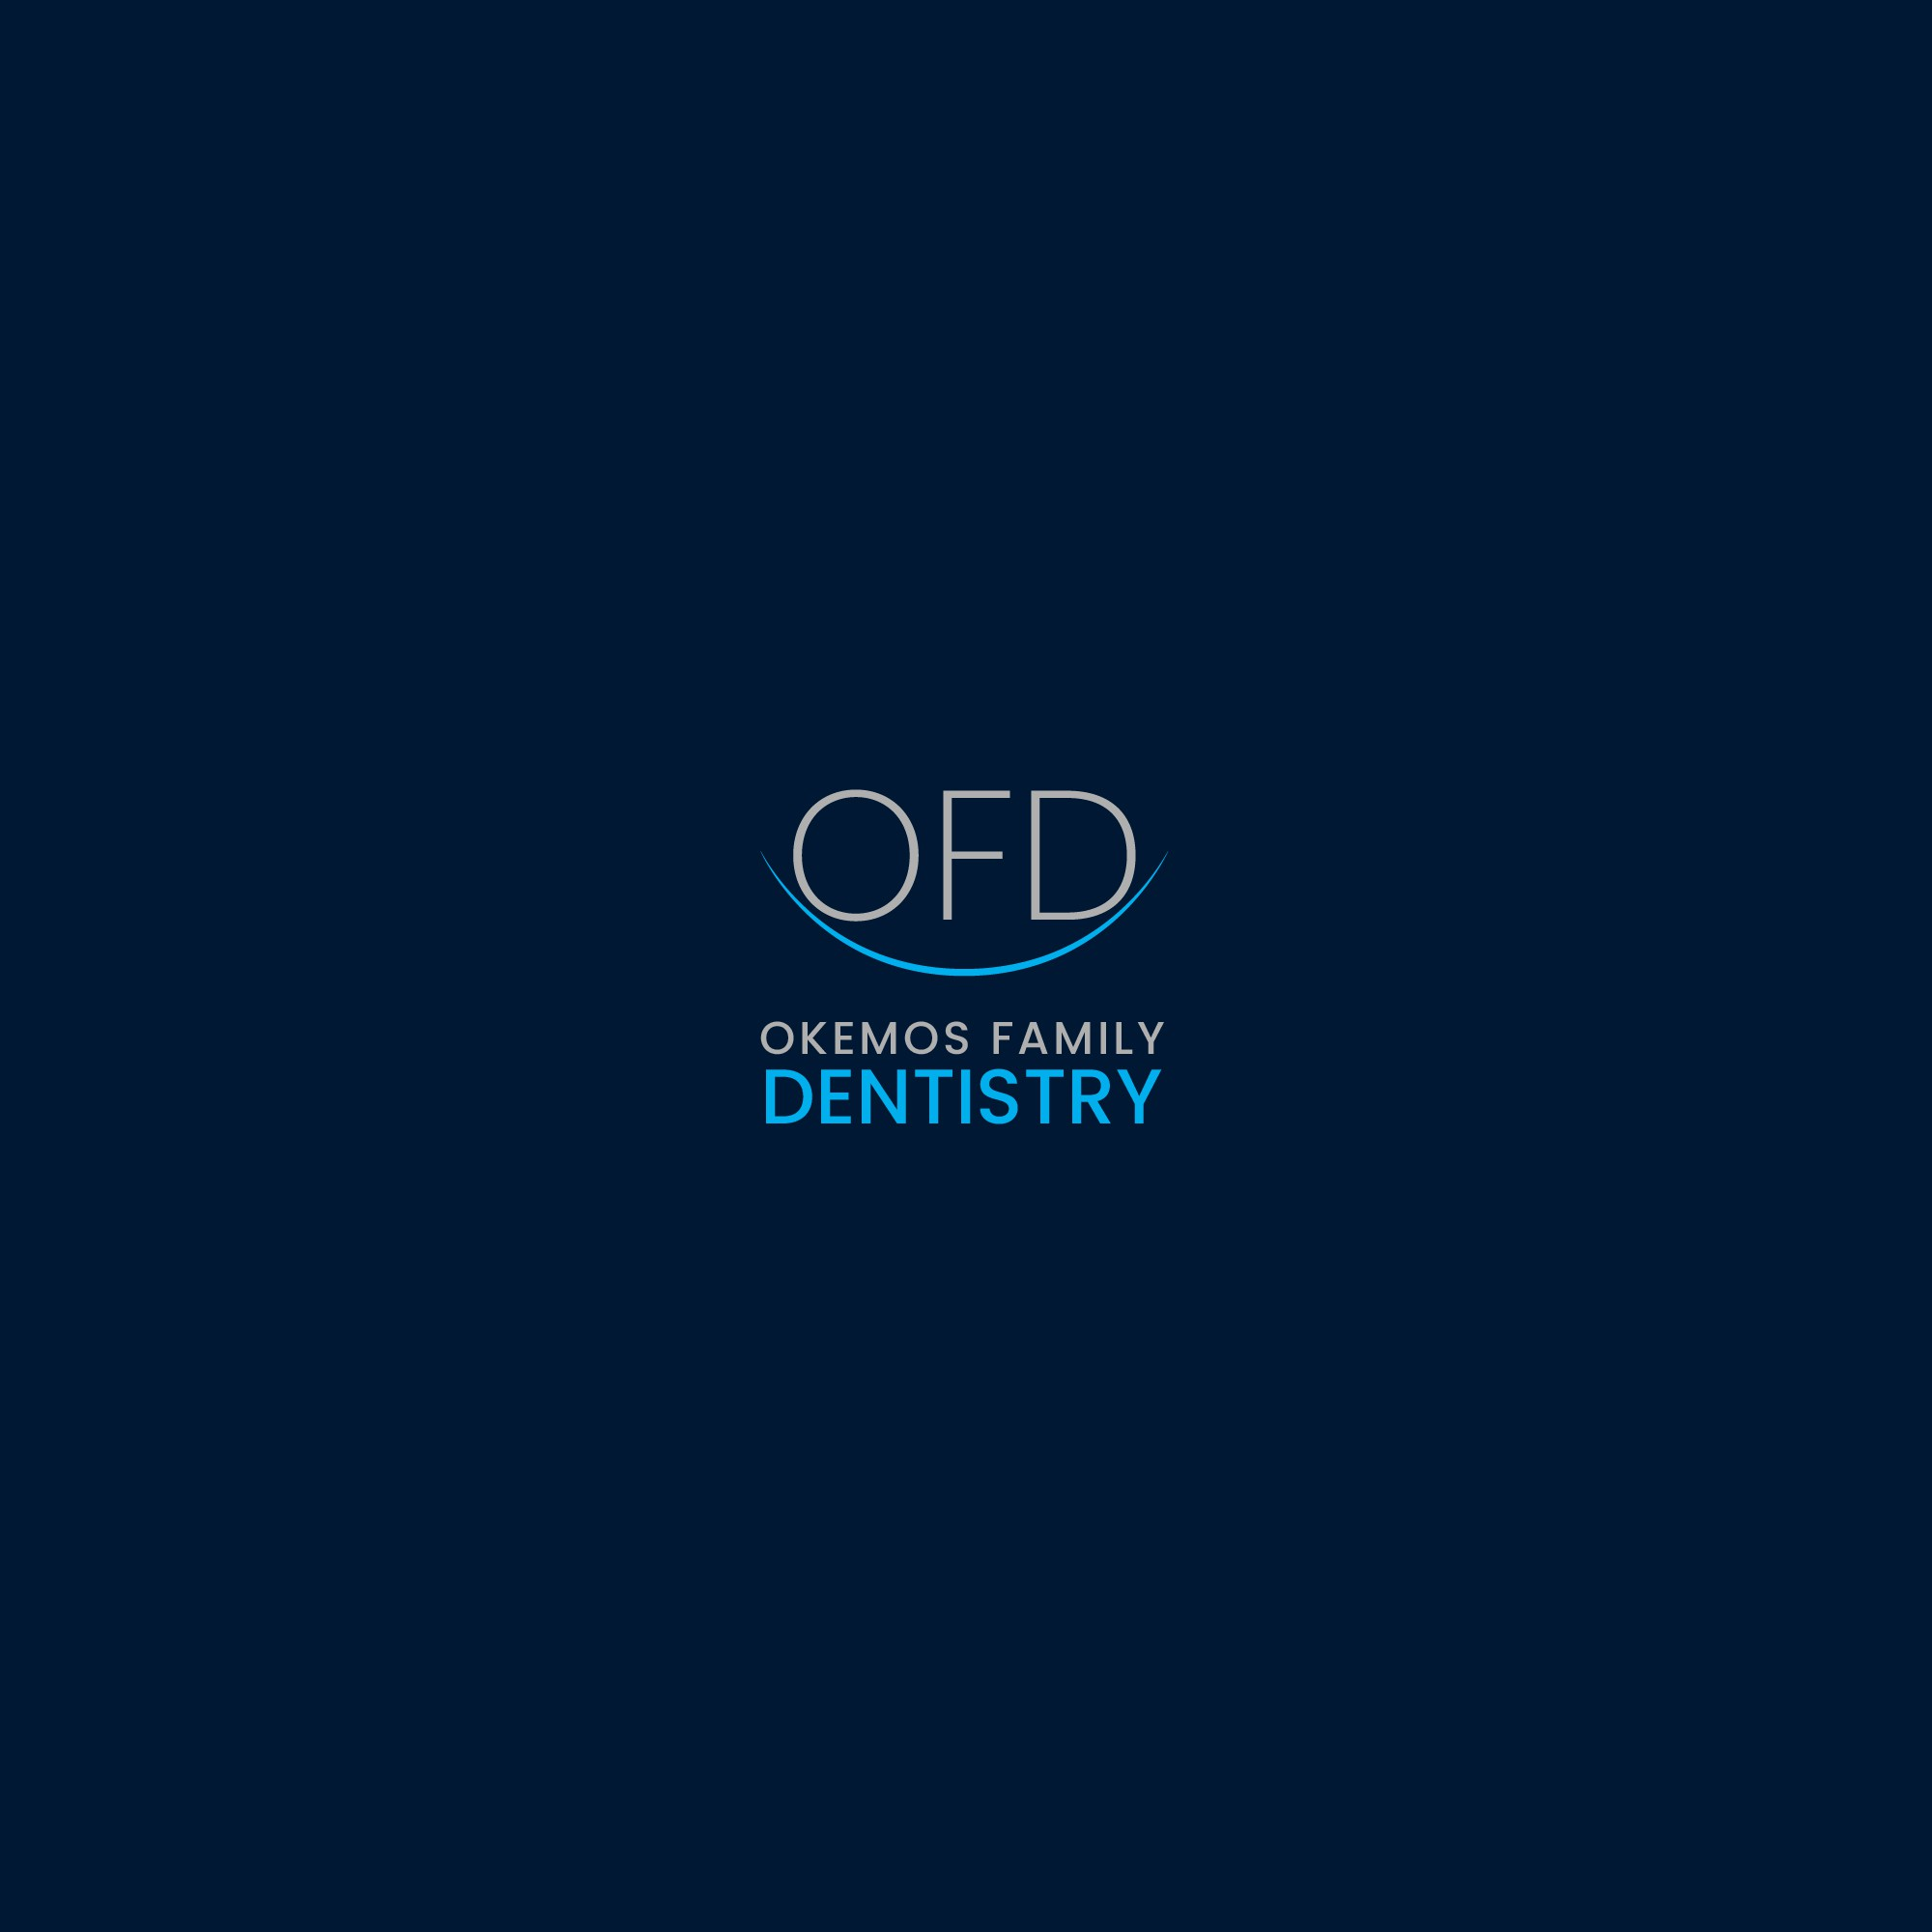 We are looking for an updated, modern design for our dental office!